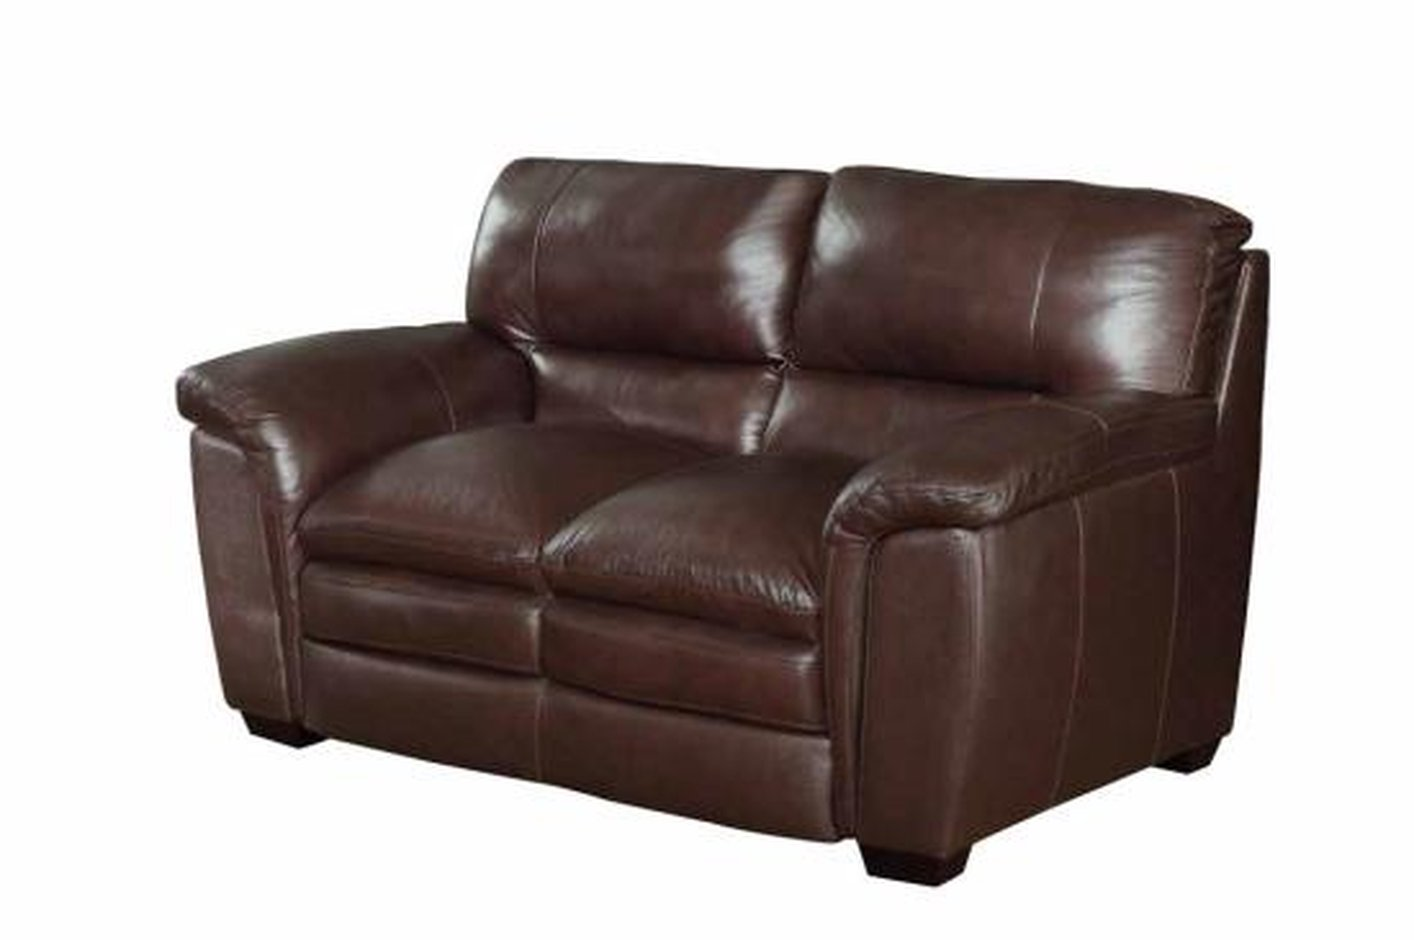 Coaster burton 503972 brown leather loveseat steal a sofa furniture outlet los angeles ca Sofa loveseat